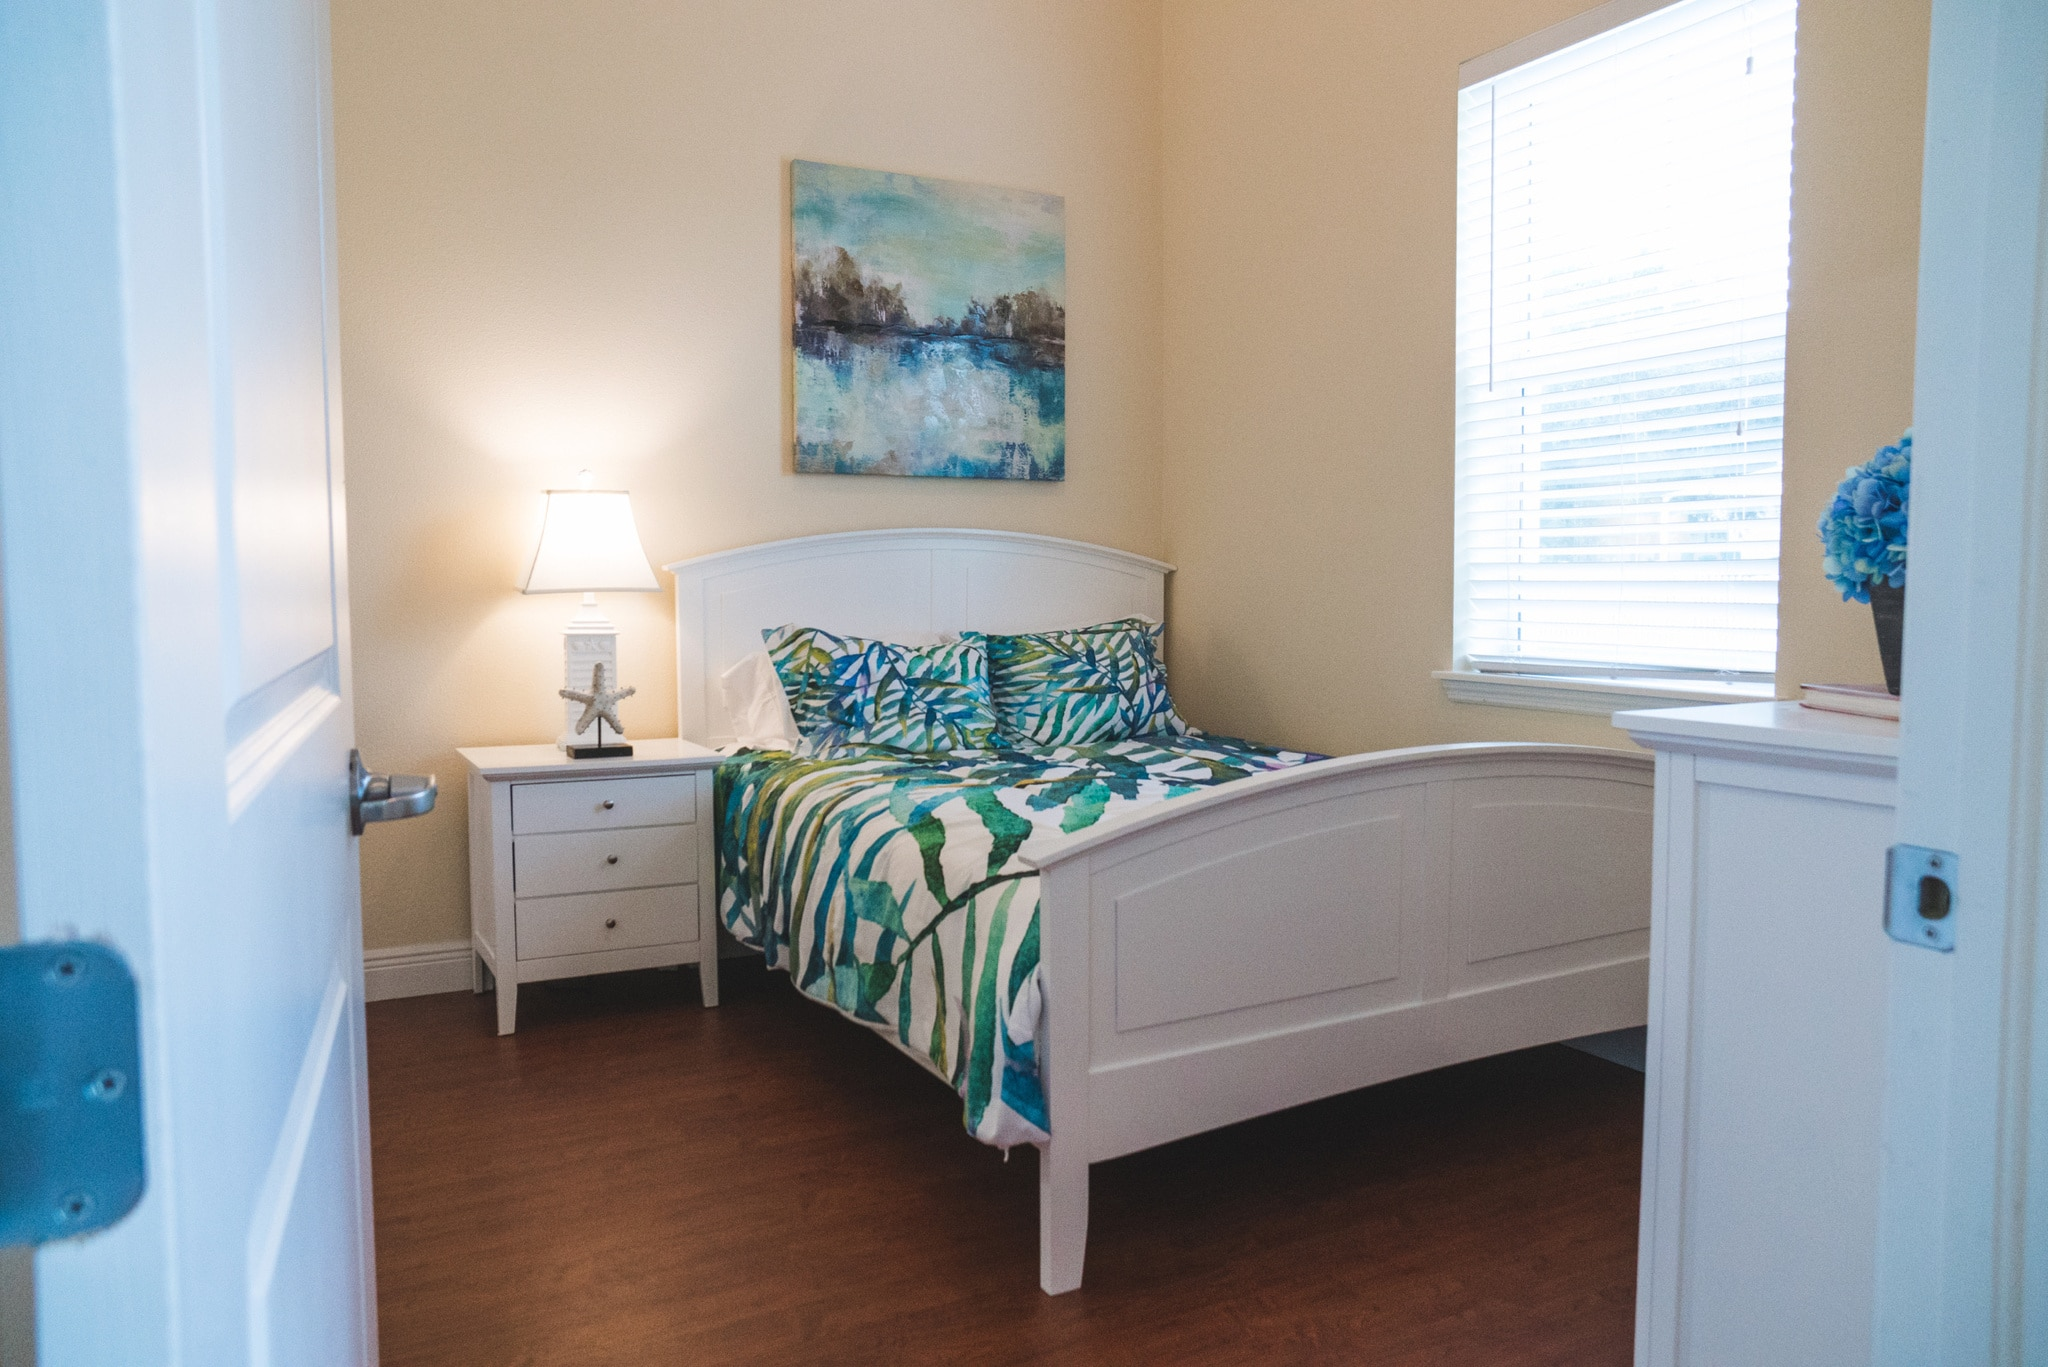 This model bedroom offers our assisted living residents an idea on how they can furnish their rooms to turn them into home.